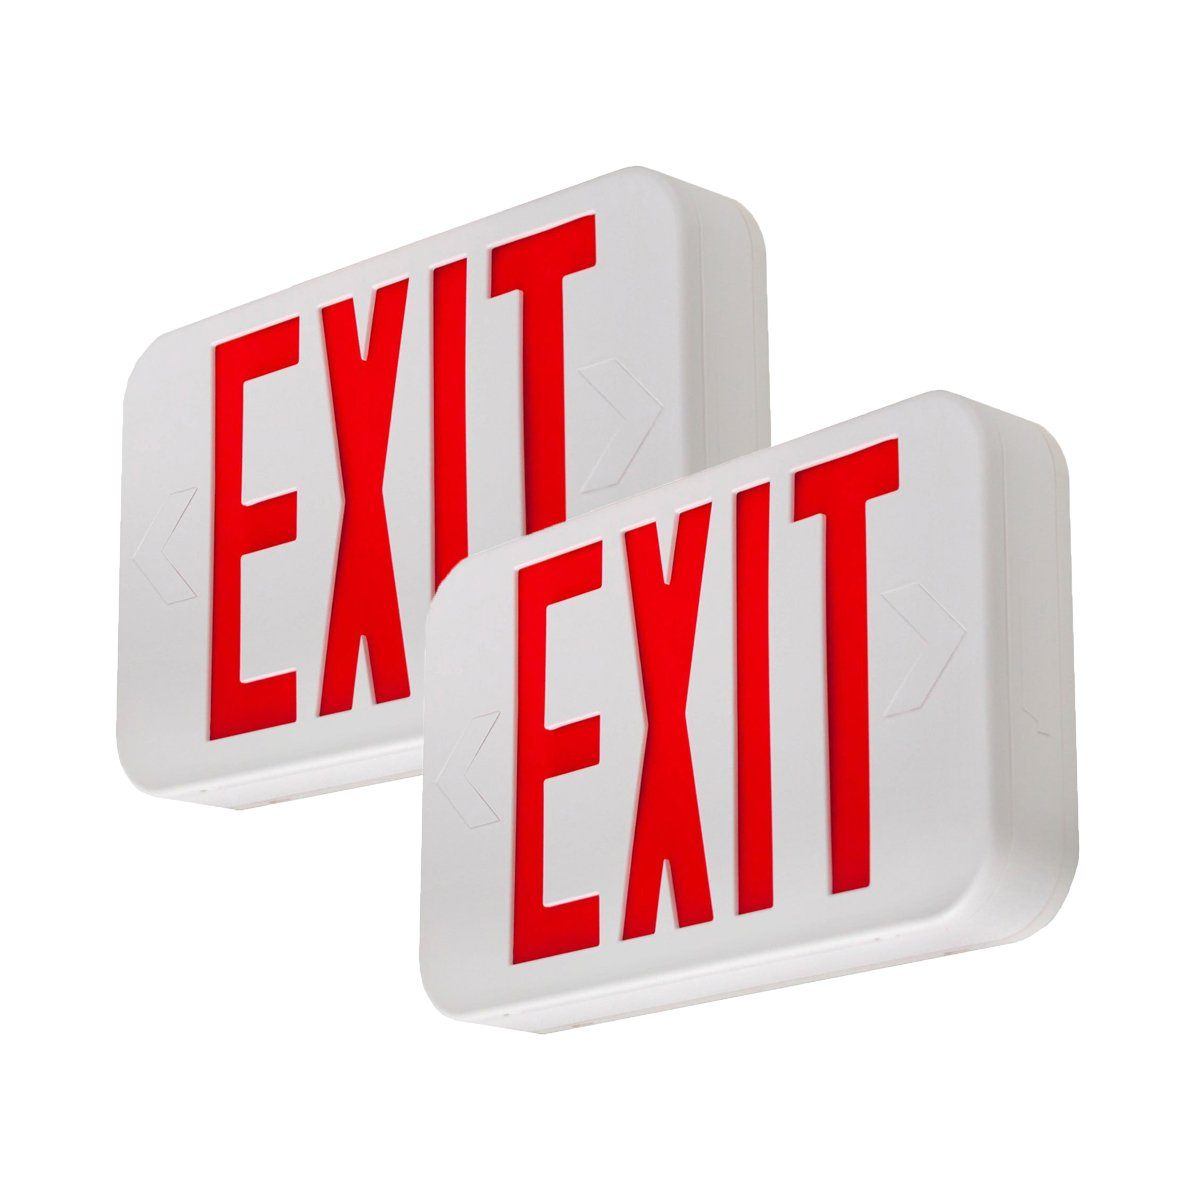 LFI Lights - 2 Pack - UL Certified - Hardwired Red LED Exit Sign, Modern Design - Battery Backup - Emergency Fire Safety - UL924 - LEDRBBJRx2